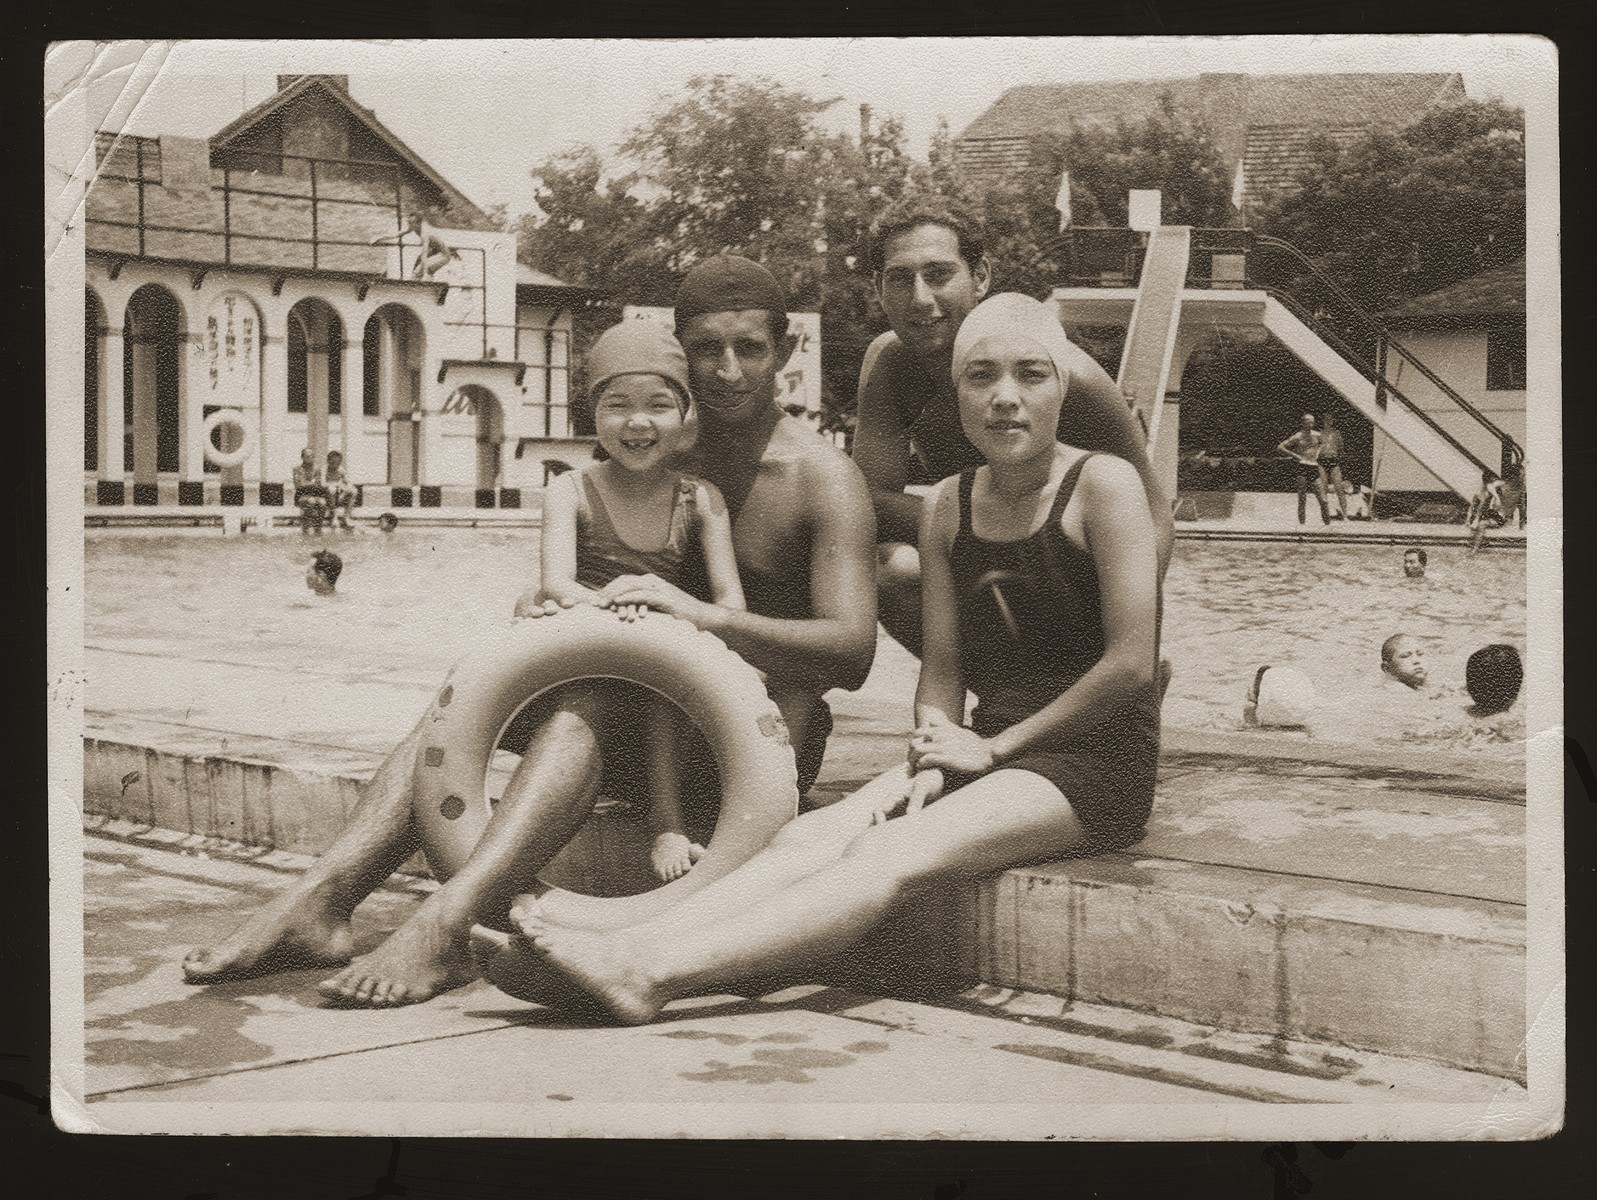 Peter Victor (second from right), a Jewish refugee from Berlin, with his friends Ely, Mrs. Oda, and her daughter at the Hongkew Park swimming pool.    Hongkew Park was a Japanese country club where Victor found employment as a lifeguard.